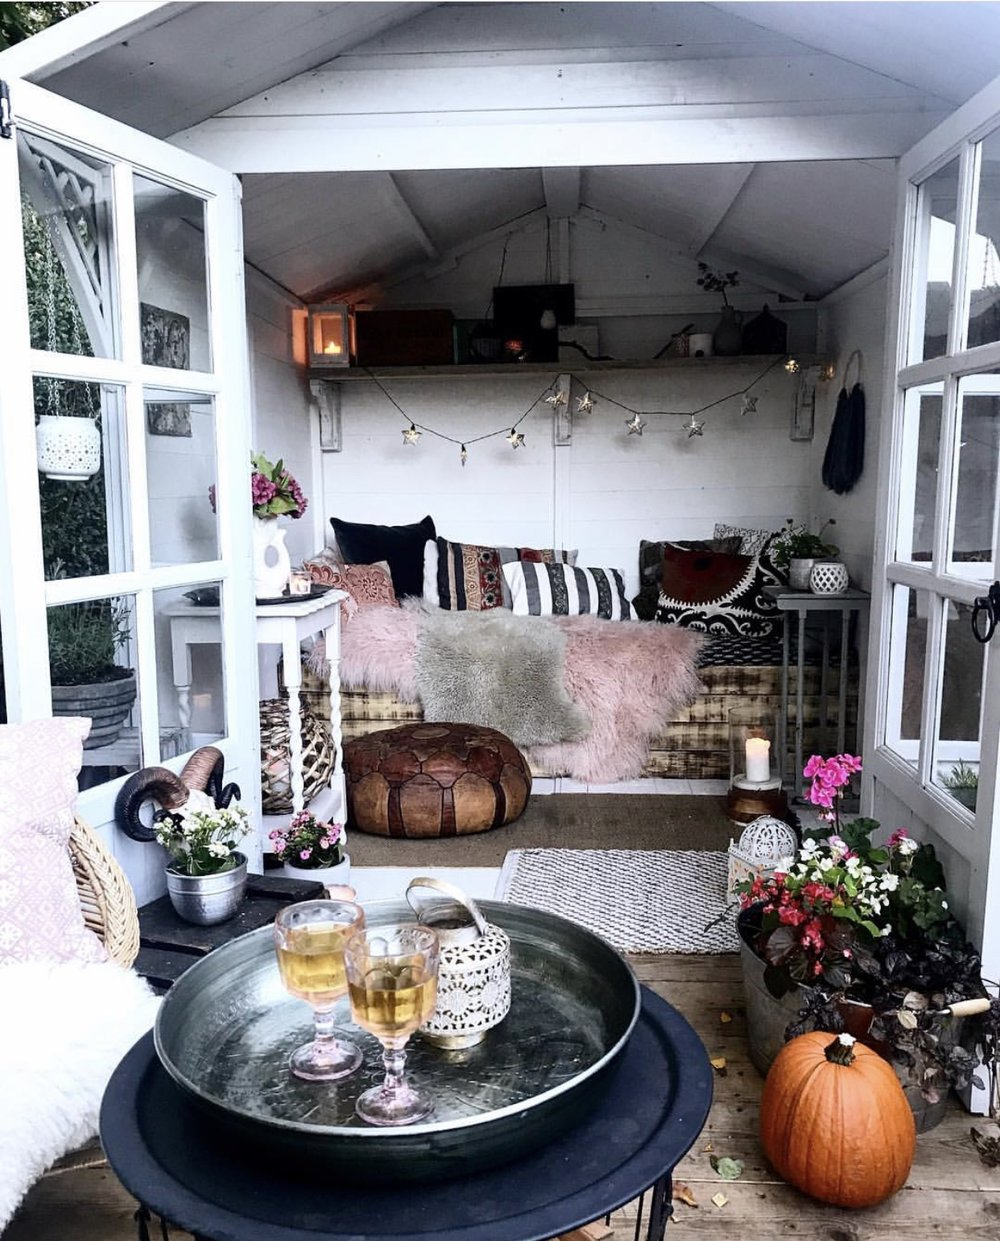 The amazing She Shed going all autumnal by Theresa Gromski - Instagram @theresagromski